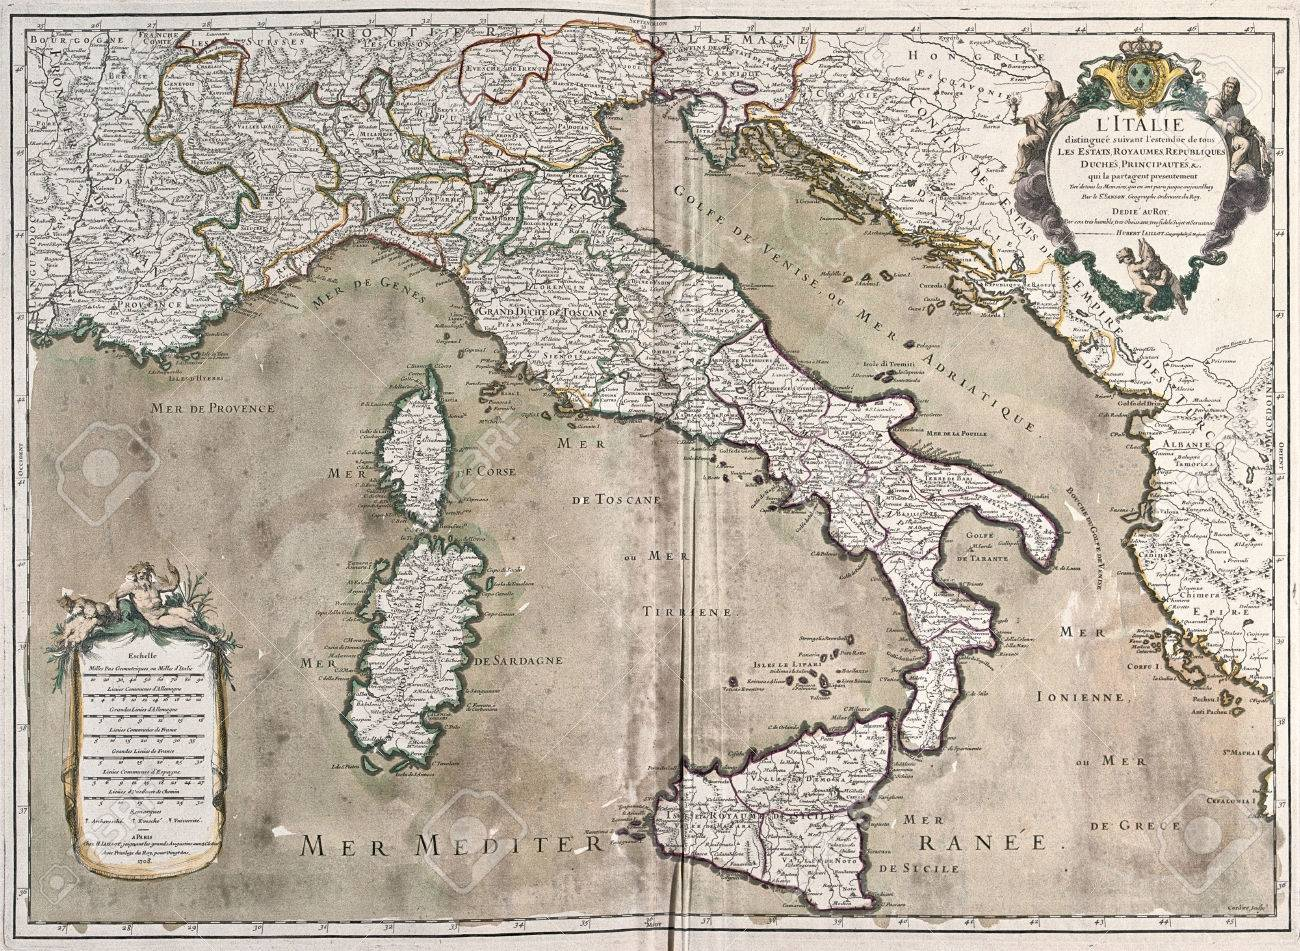 Old map of italy with corsica and sardinia stock photo picture and old map of italy with corsica and sardinia stock photo 42101438 gumiabroncs Choice Image